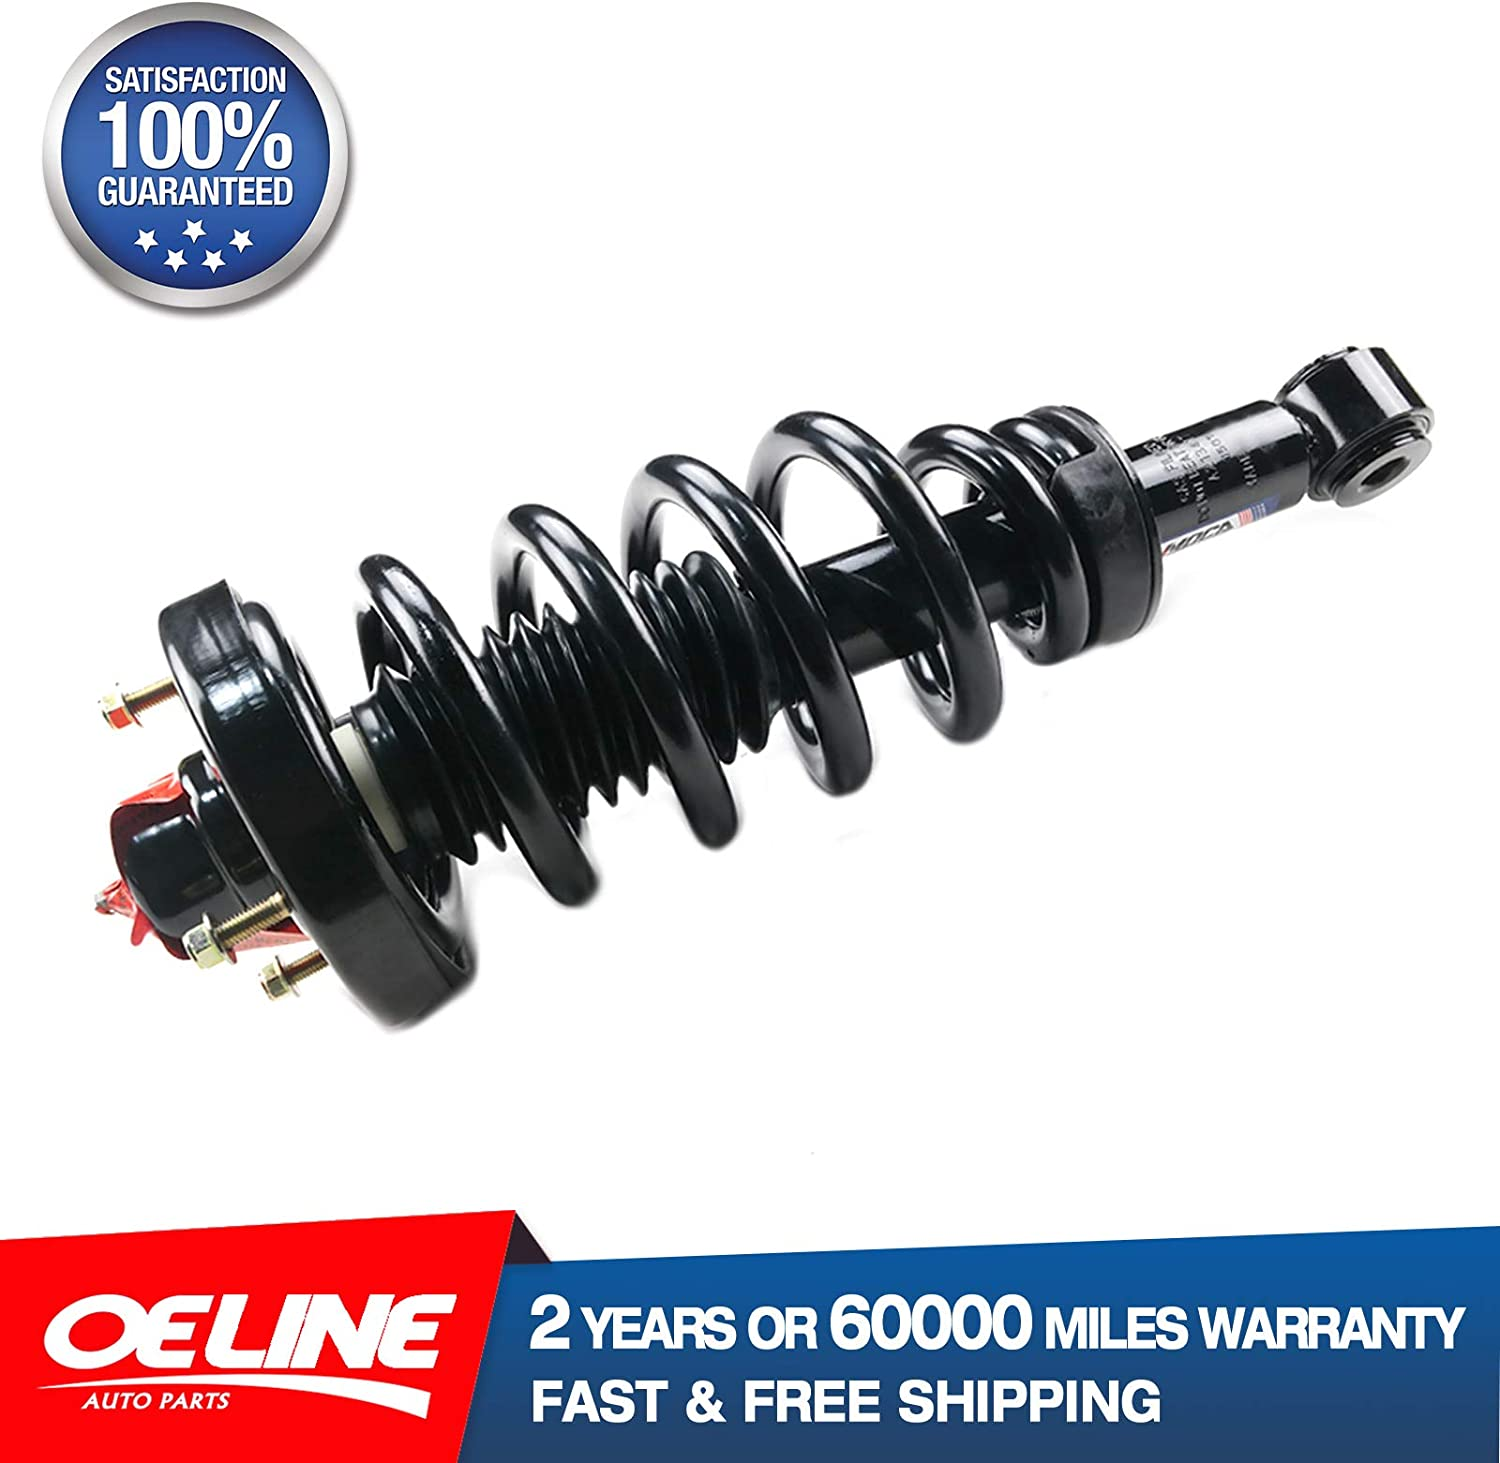 MOCA 171139 Rear Pair of 2 Complete Strut Coil Spring Assembly Left and Right Shock Absorber for 2007-2013 Ford Expedition 5.4L /& 2007-1013 Lincoln Navigator 5.4L